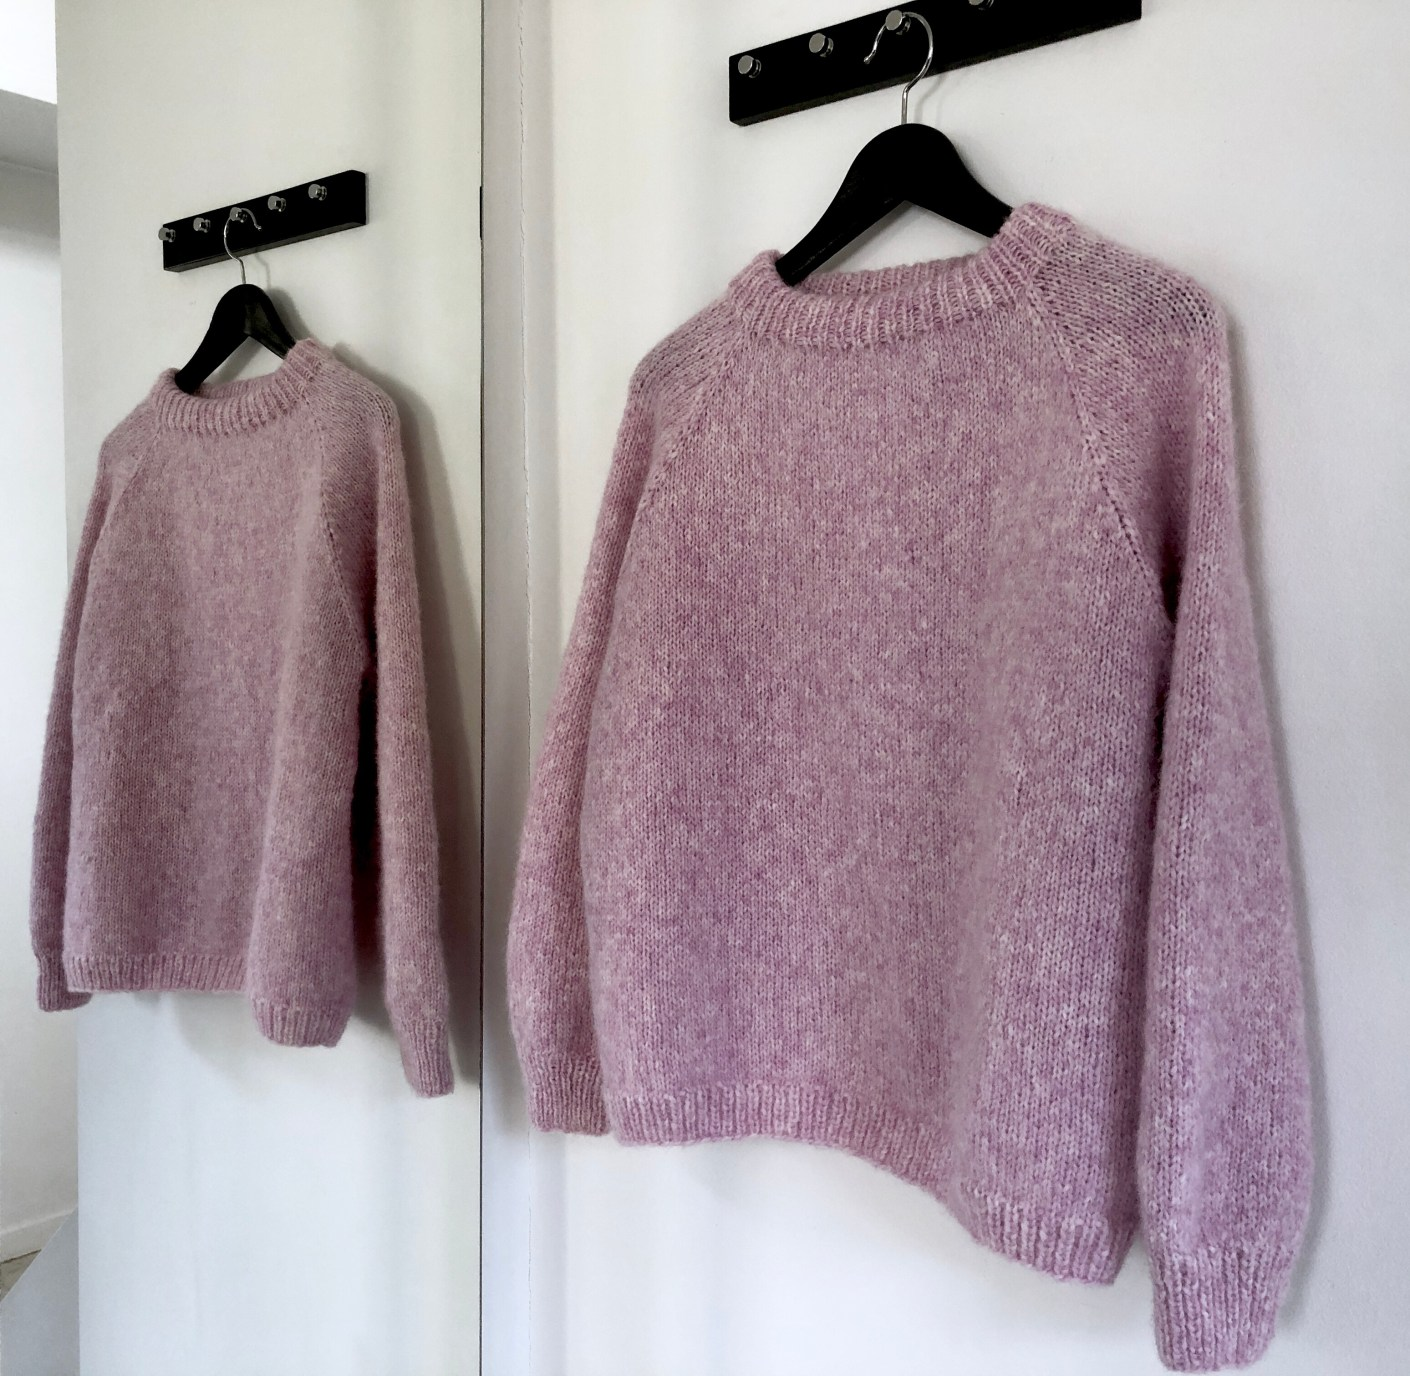 candyflos sweater